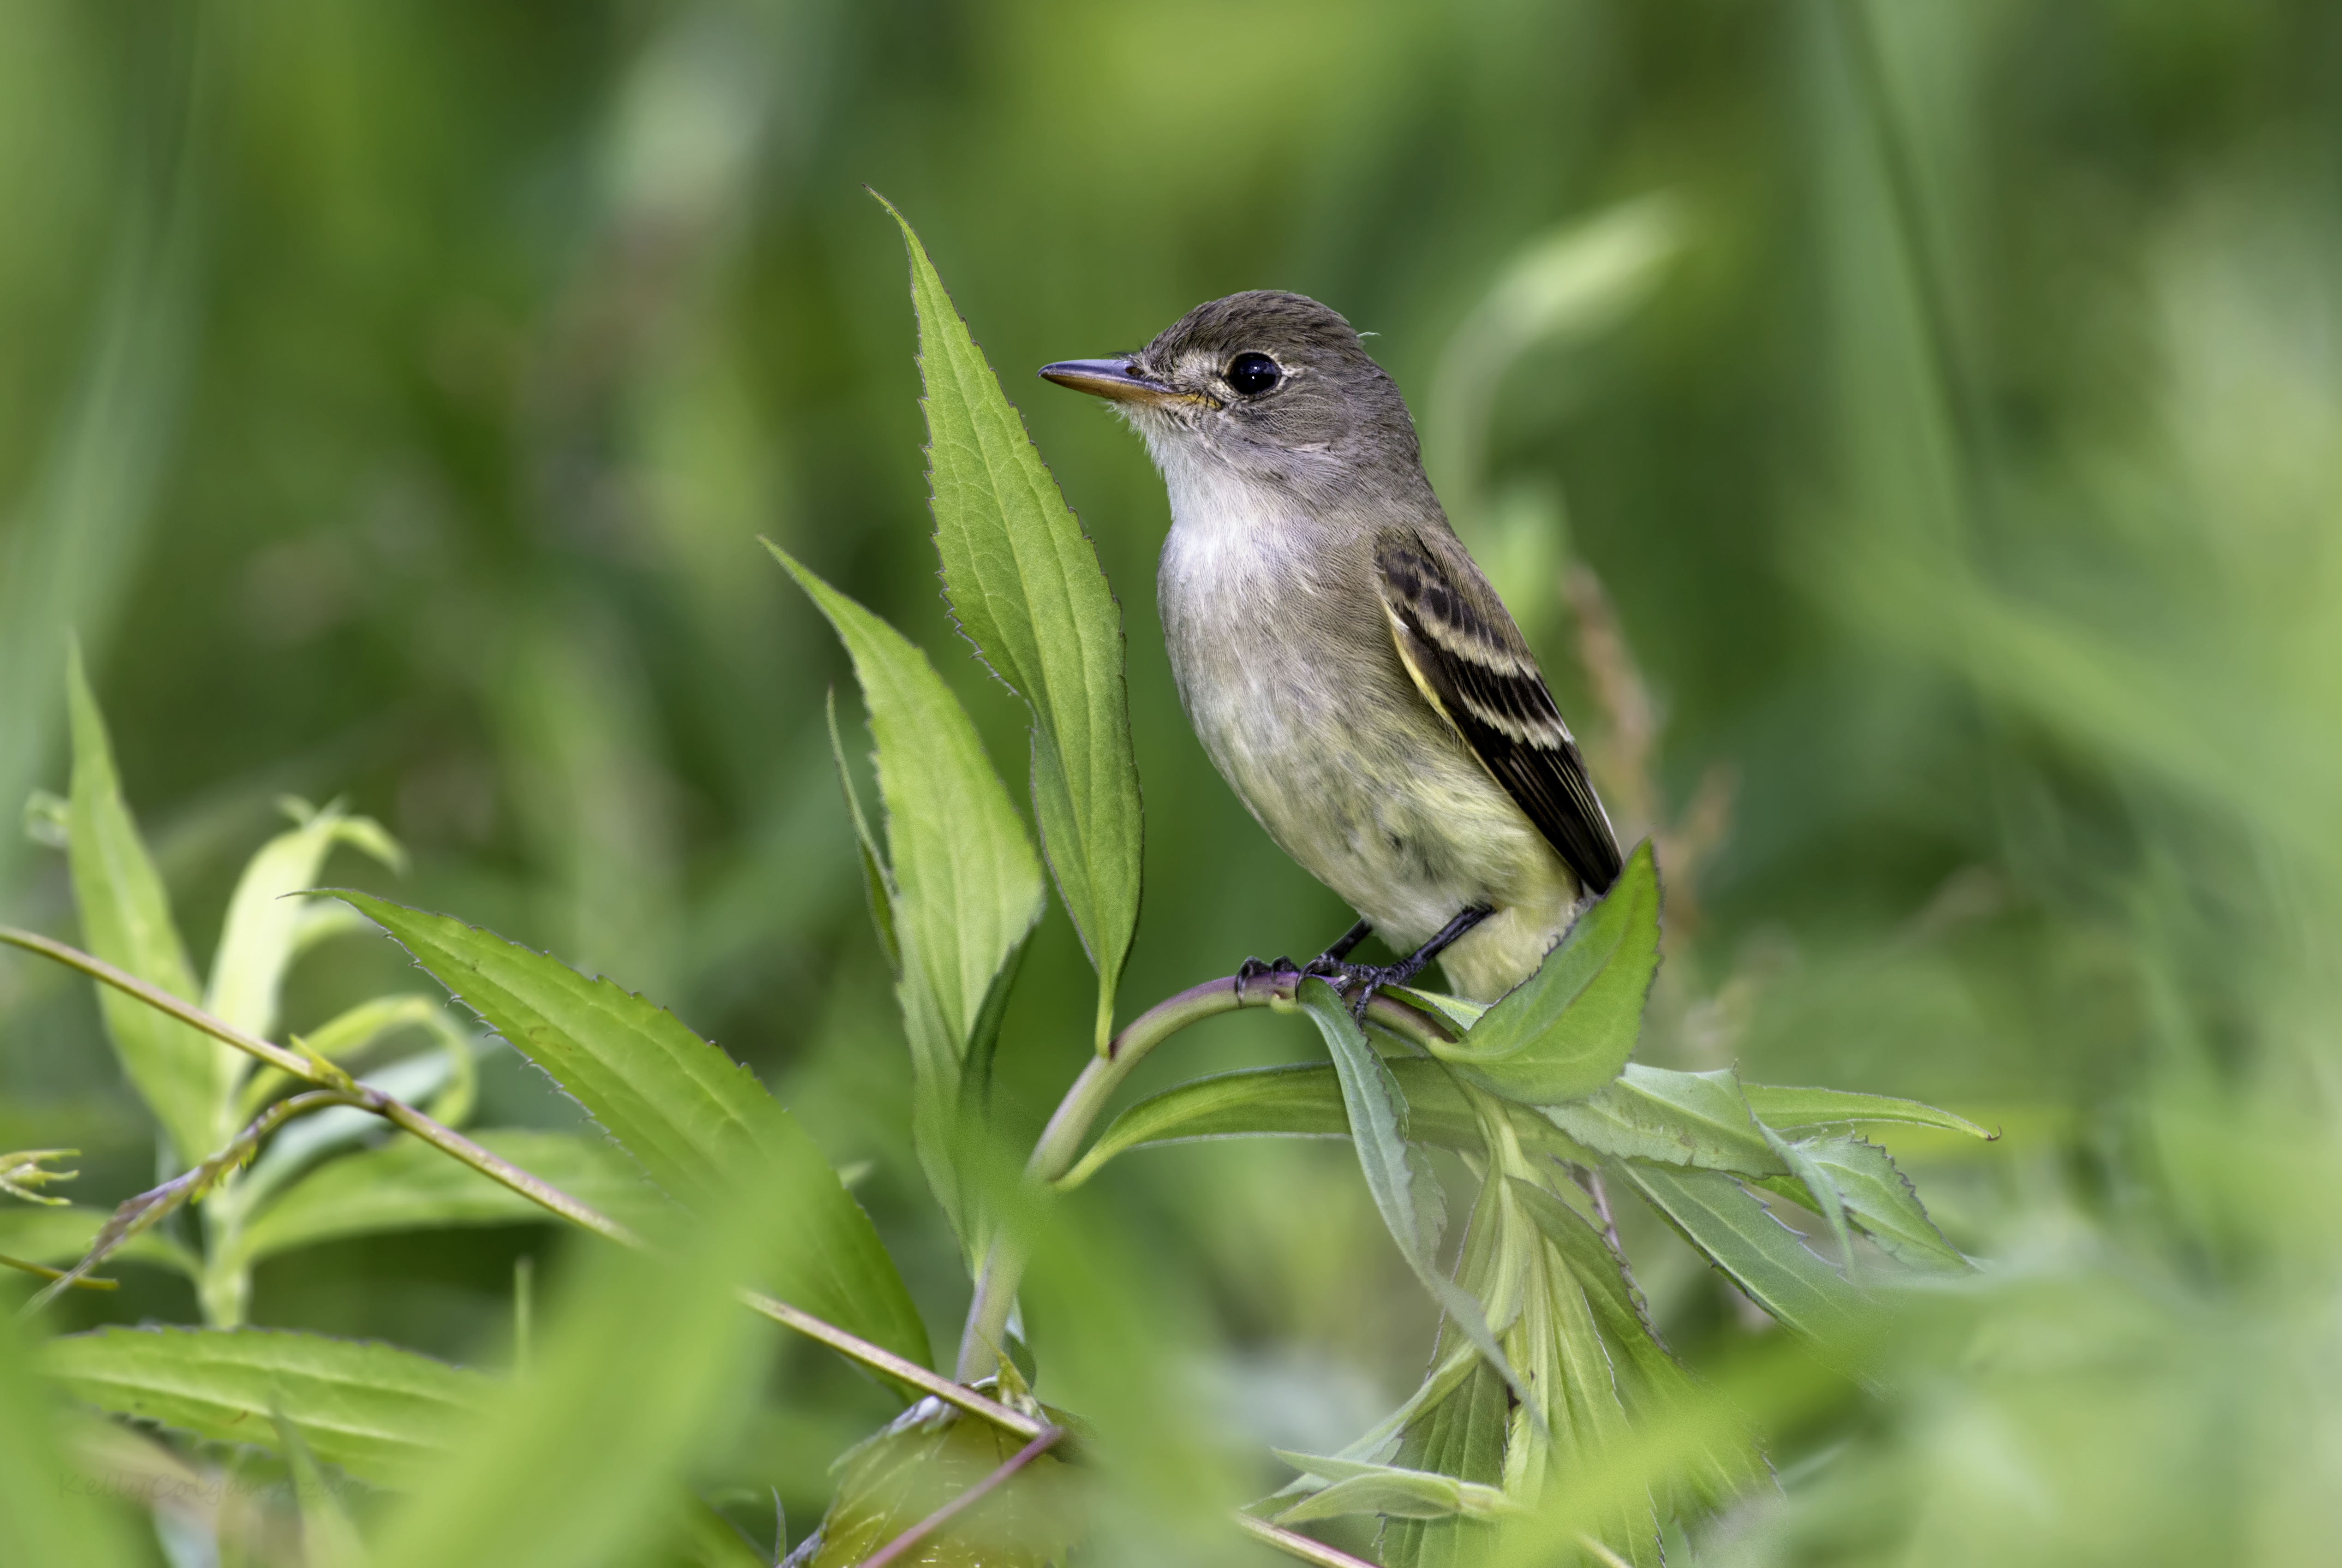 20 willow flycatcher native willow kelly colgan azar cc%28by nd%202.0%29